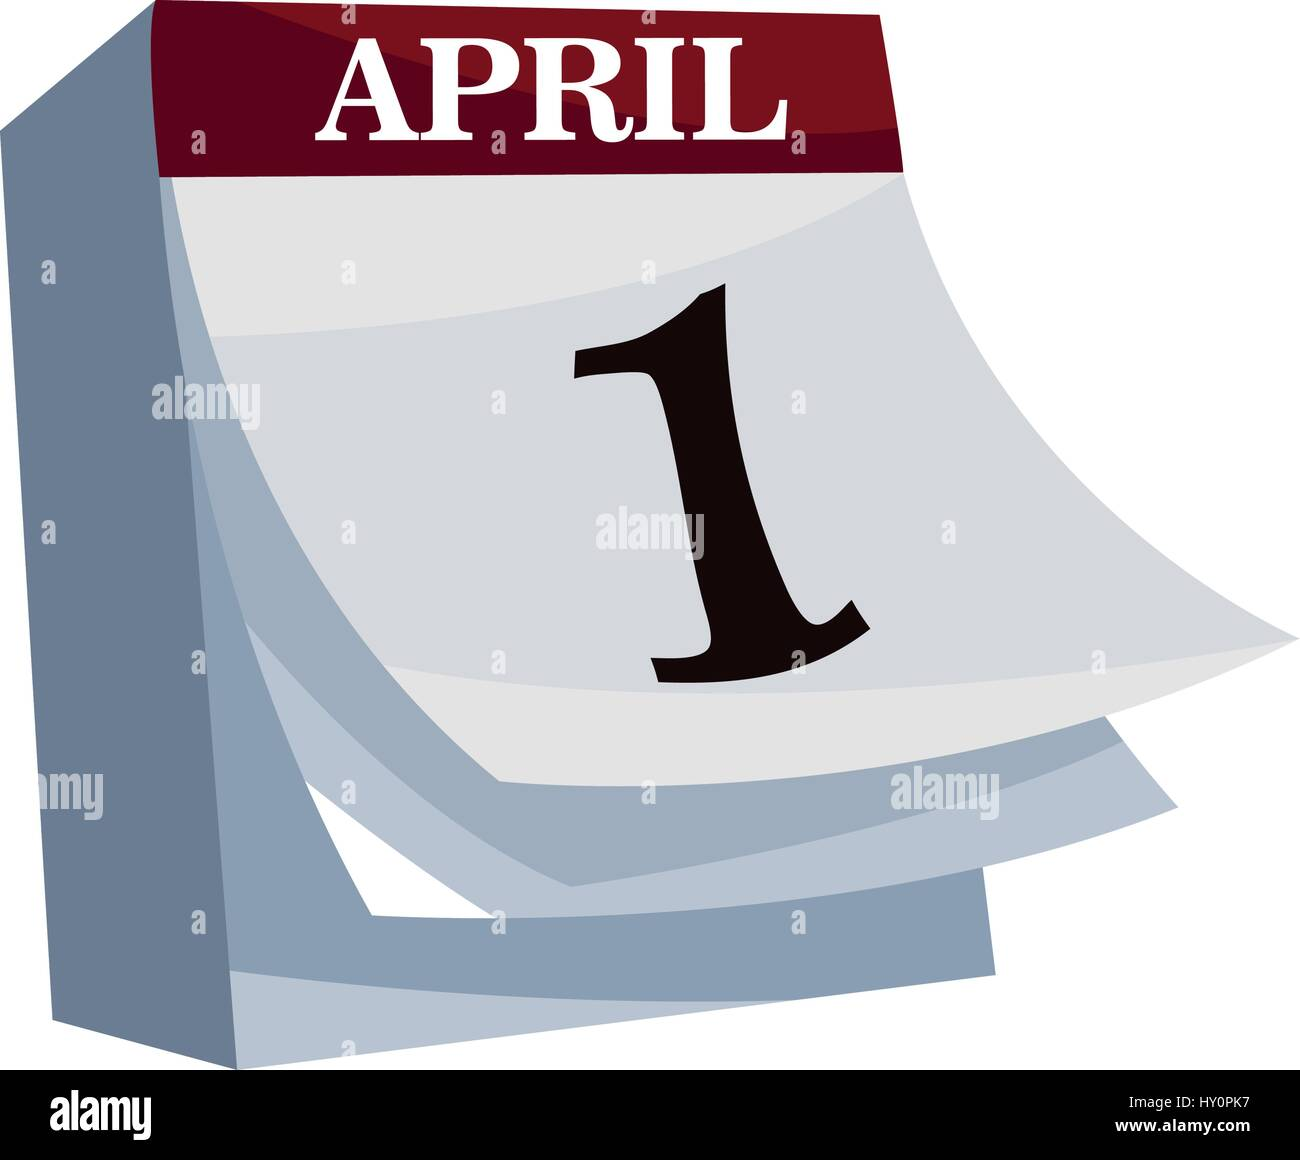 April fools day dating